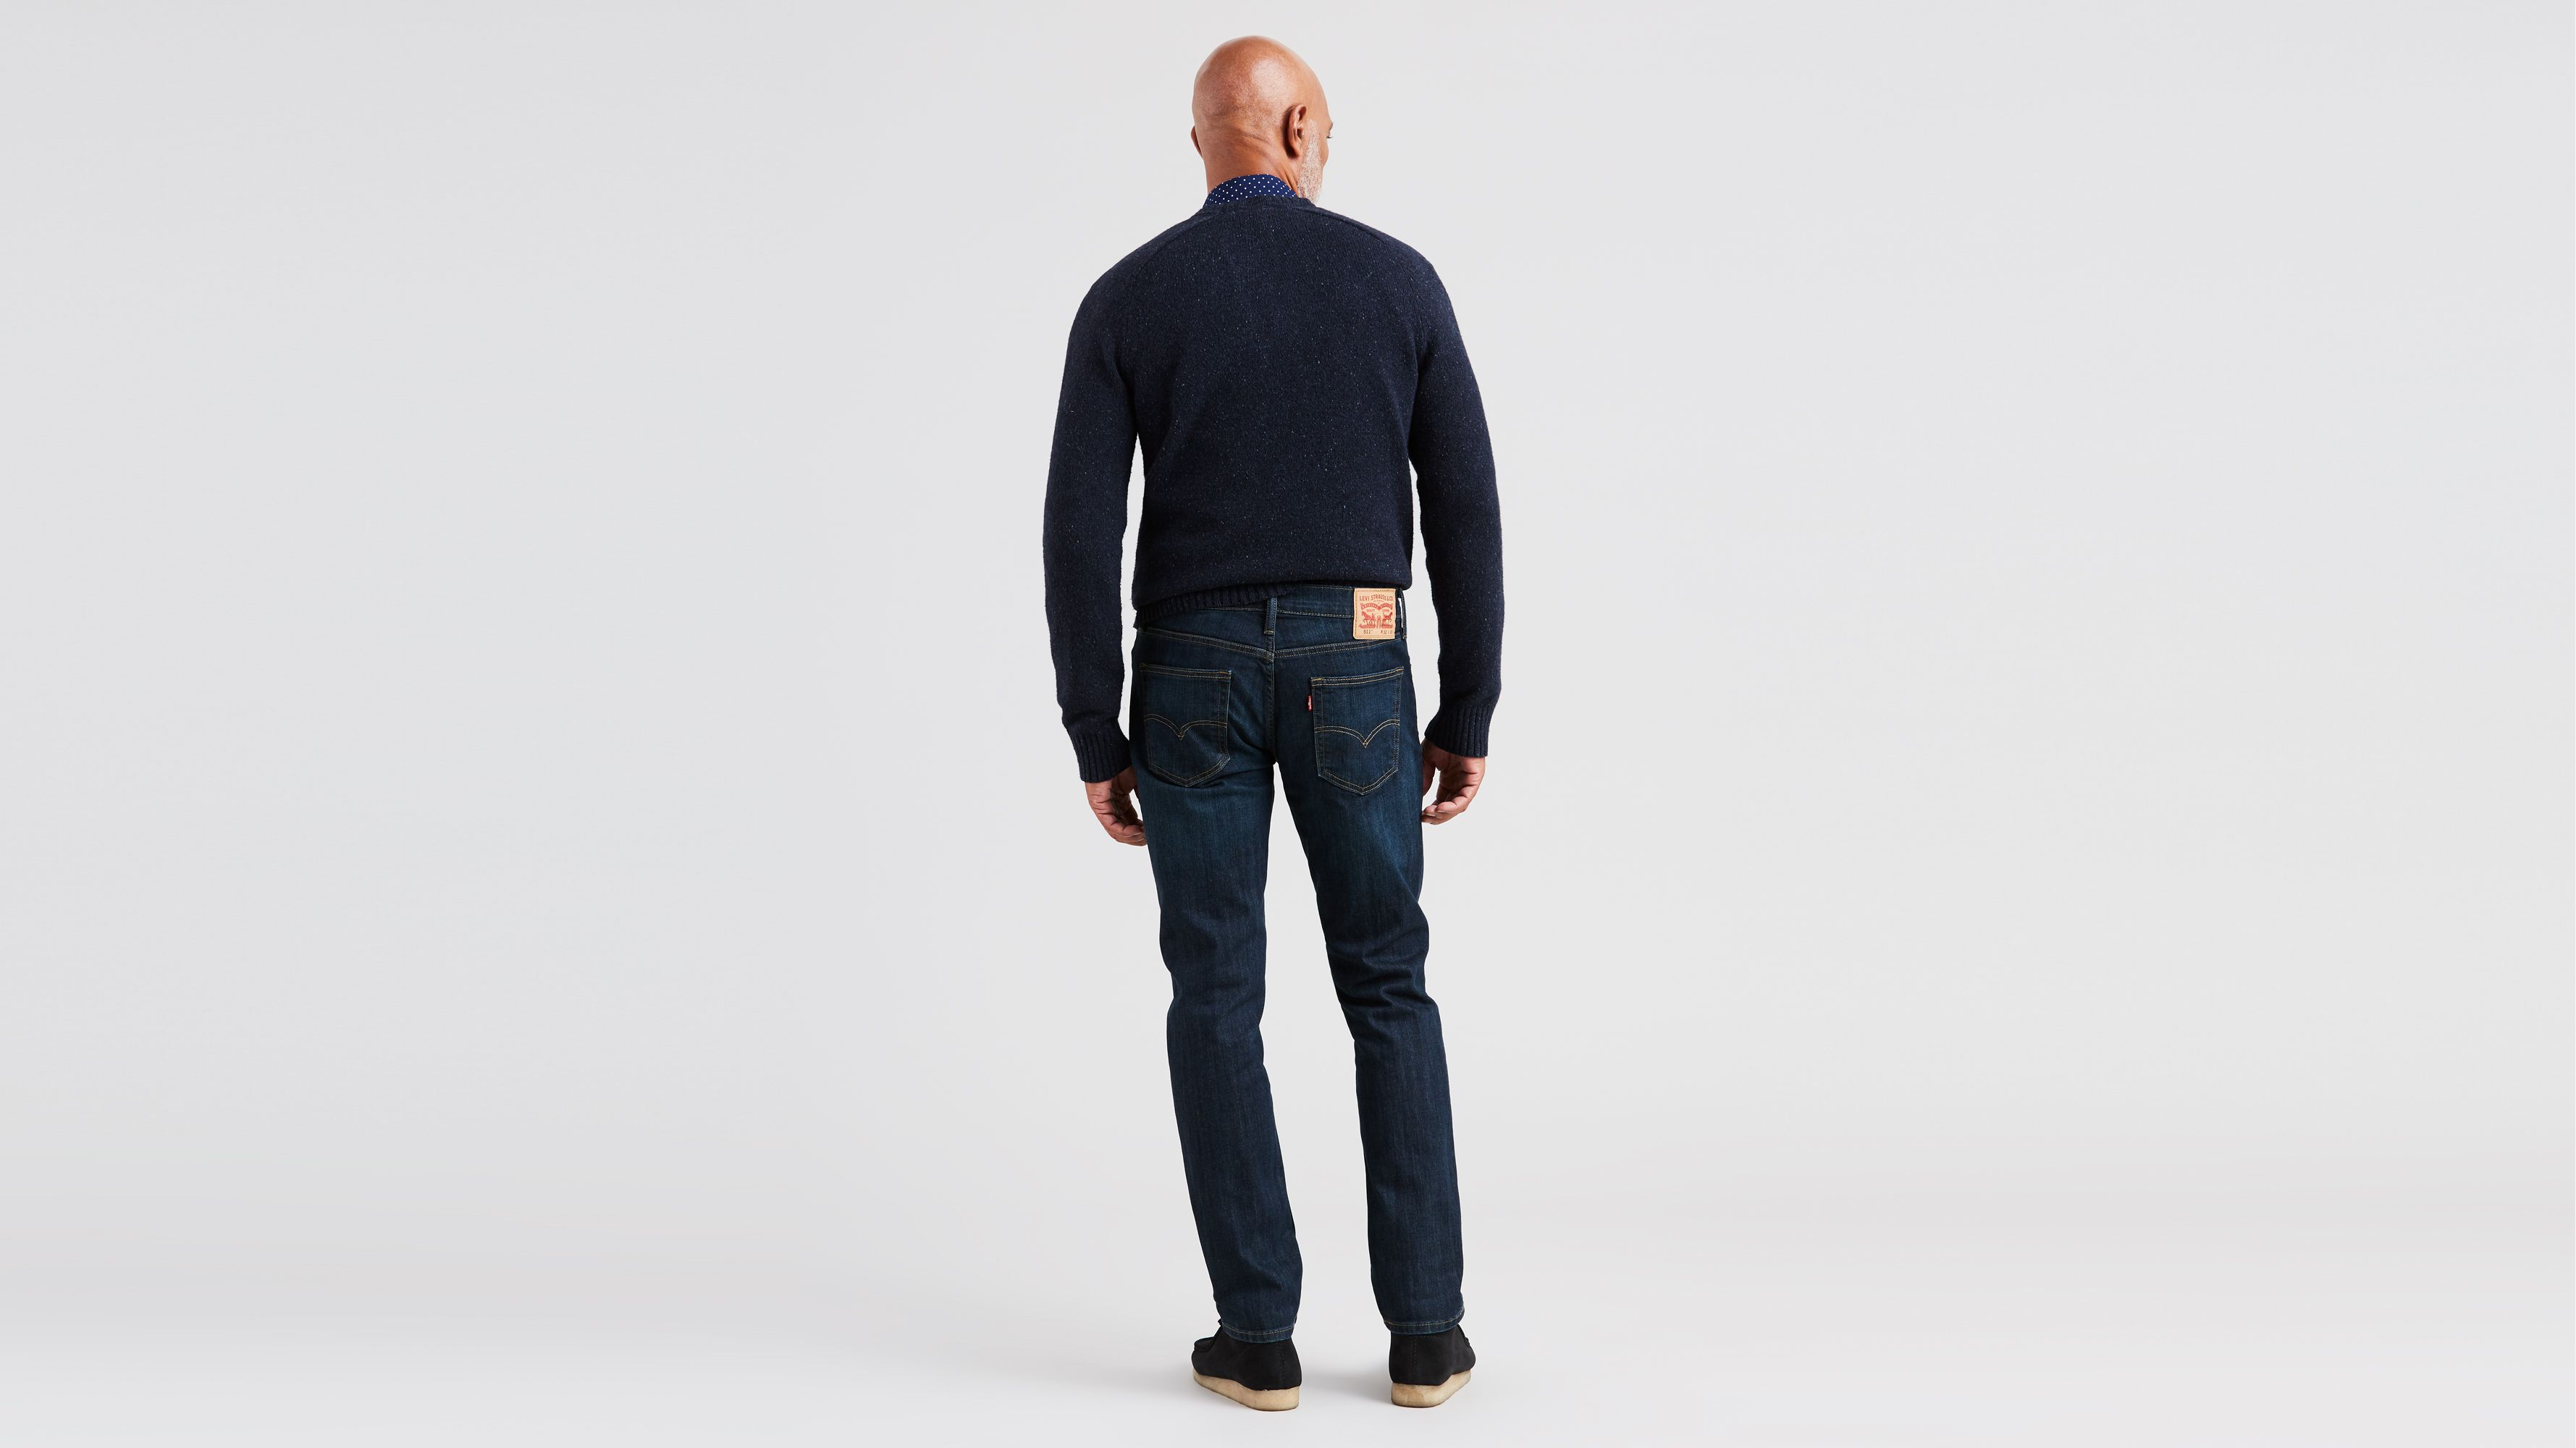 00cd7b80278 511™ Slim Fit Jeans. $69.50. Or 4 installments of $17.38 by Afterpay